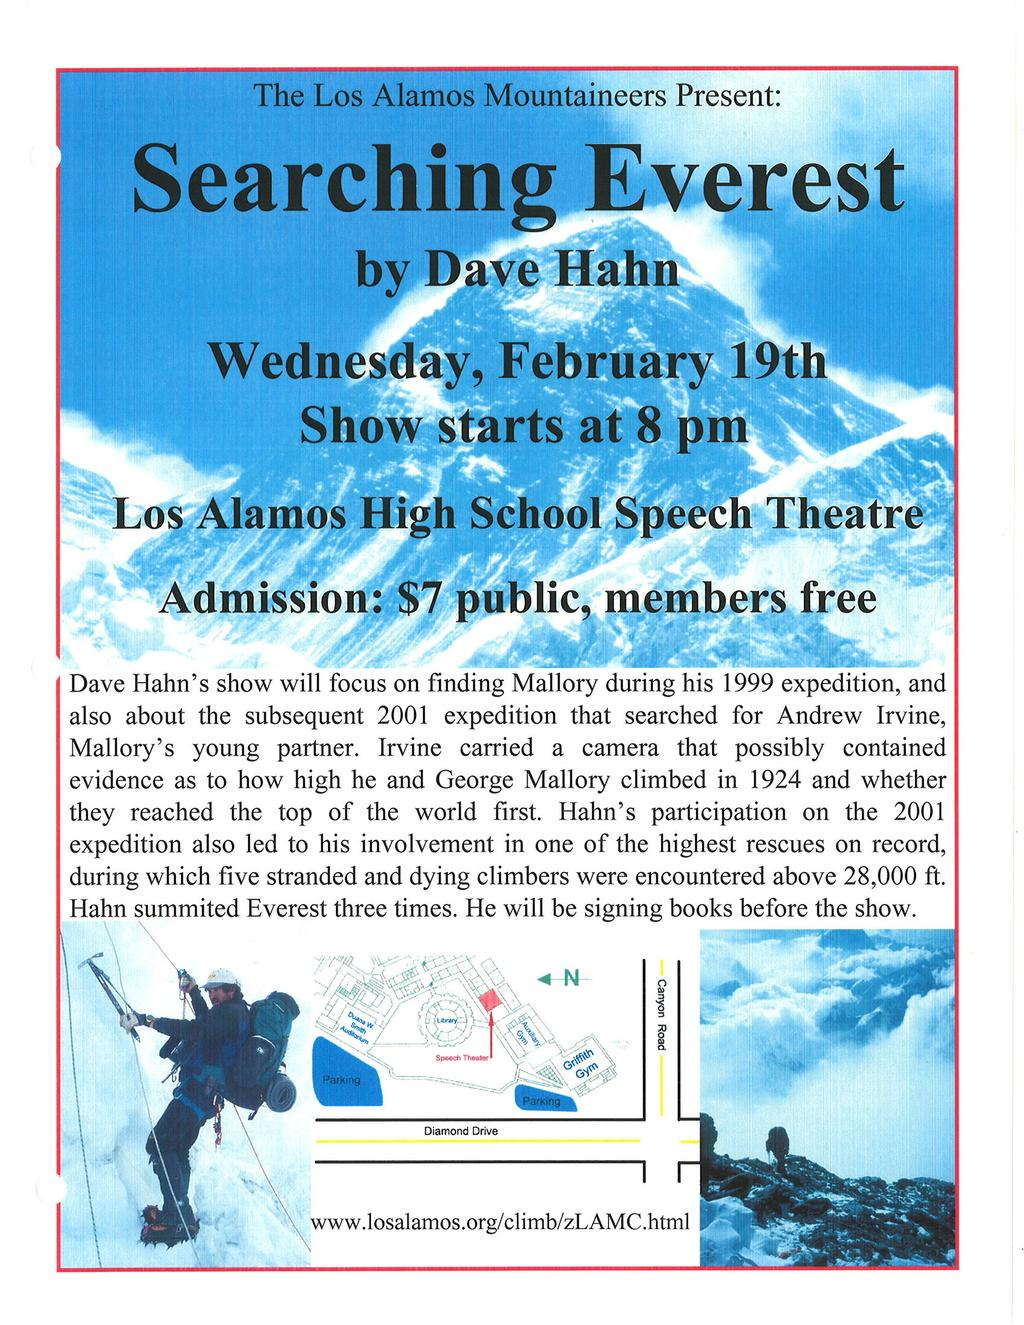 The Los Alamos Mountaineers Present: Searching Everest by l)ave Hahn \ilednesd ùy, February 19th Show starts at 8 pm Los Alamos High Schoot Speech Theatre Admission: $7 public, members free Dave